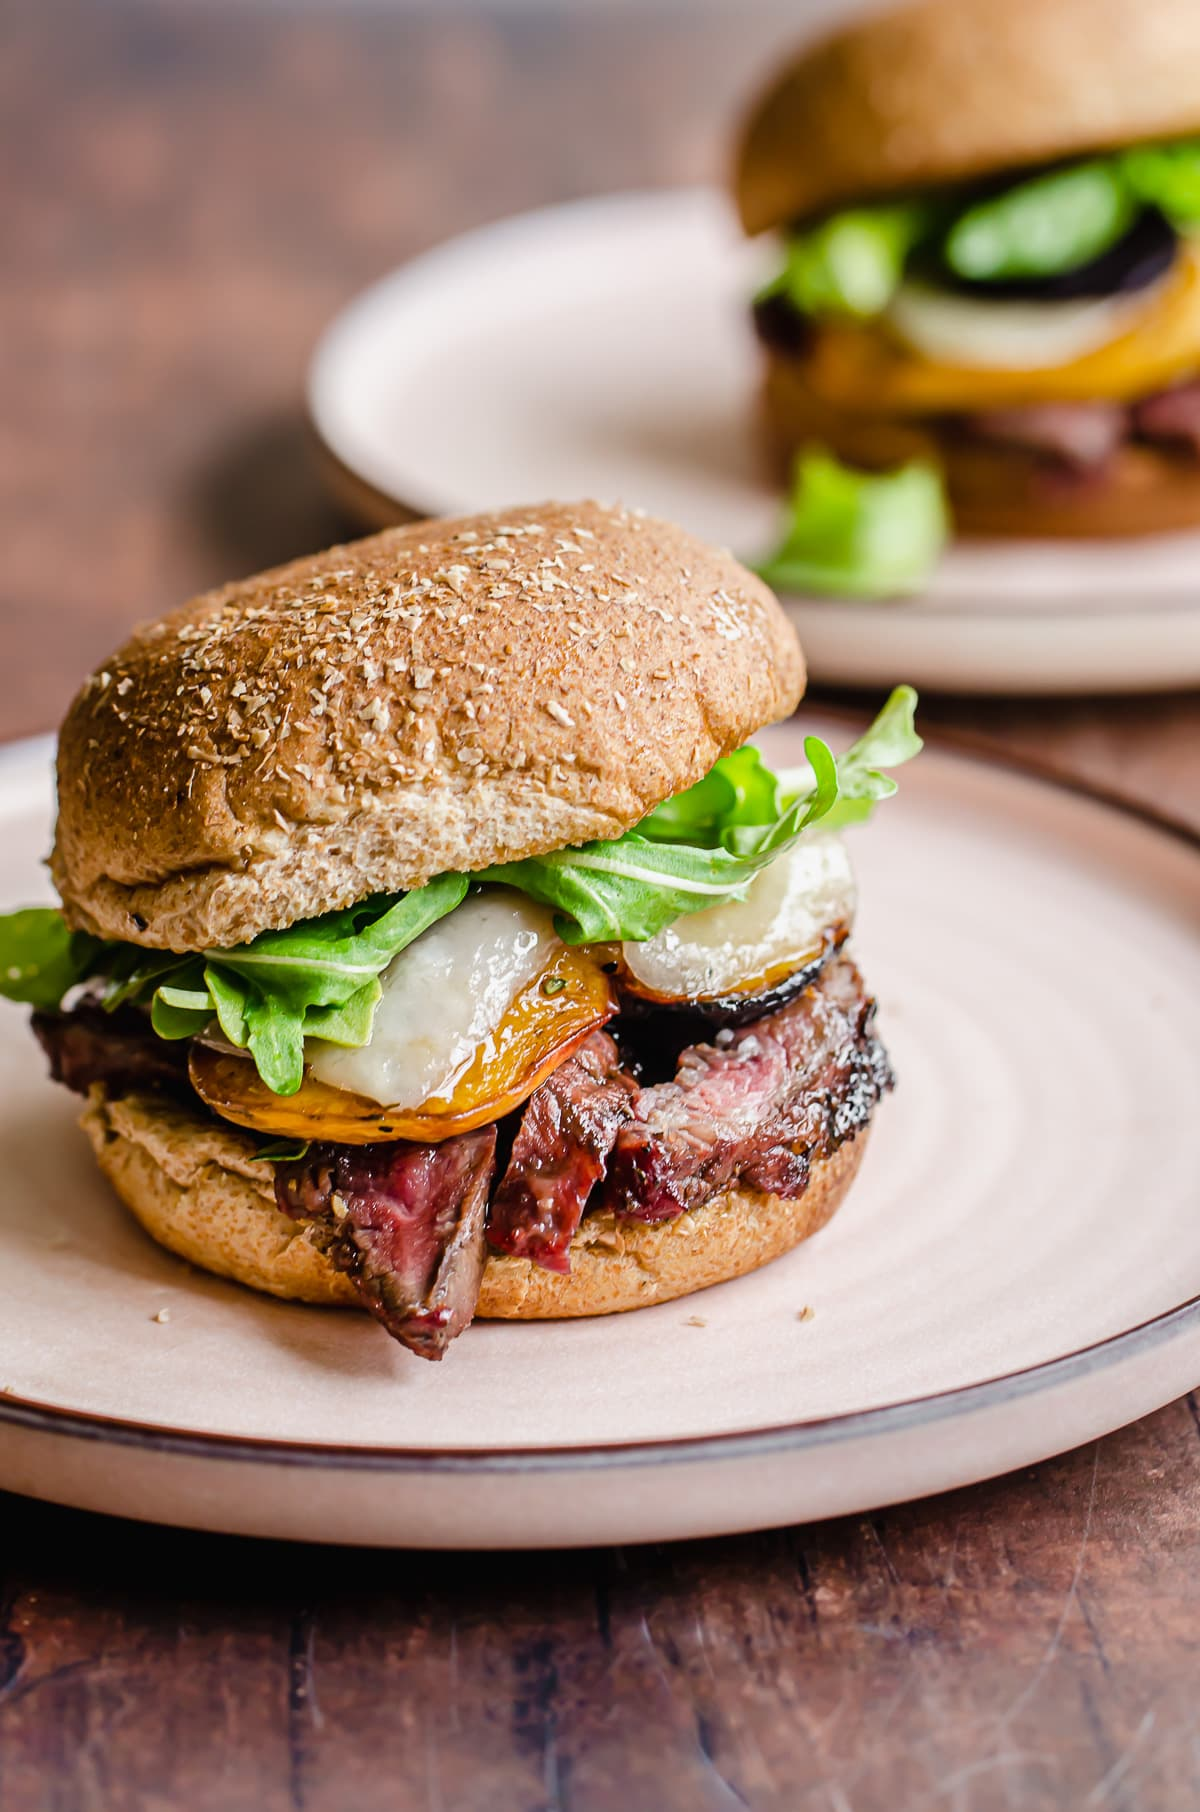 Straight-on shot of a steak sandwich on a wheat bun with lettuce, cheese, and peaches.